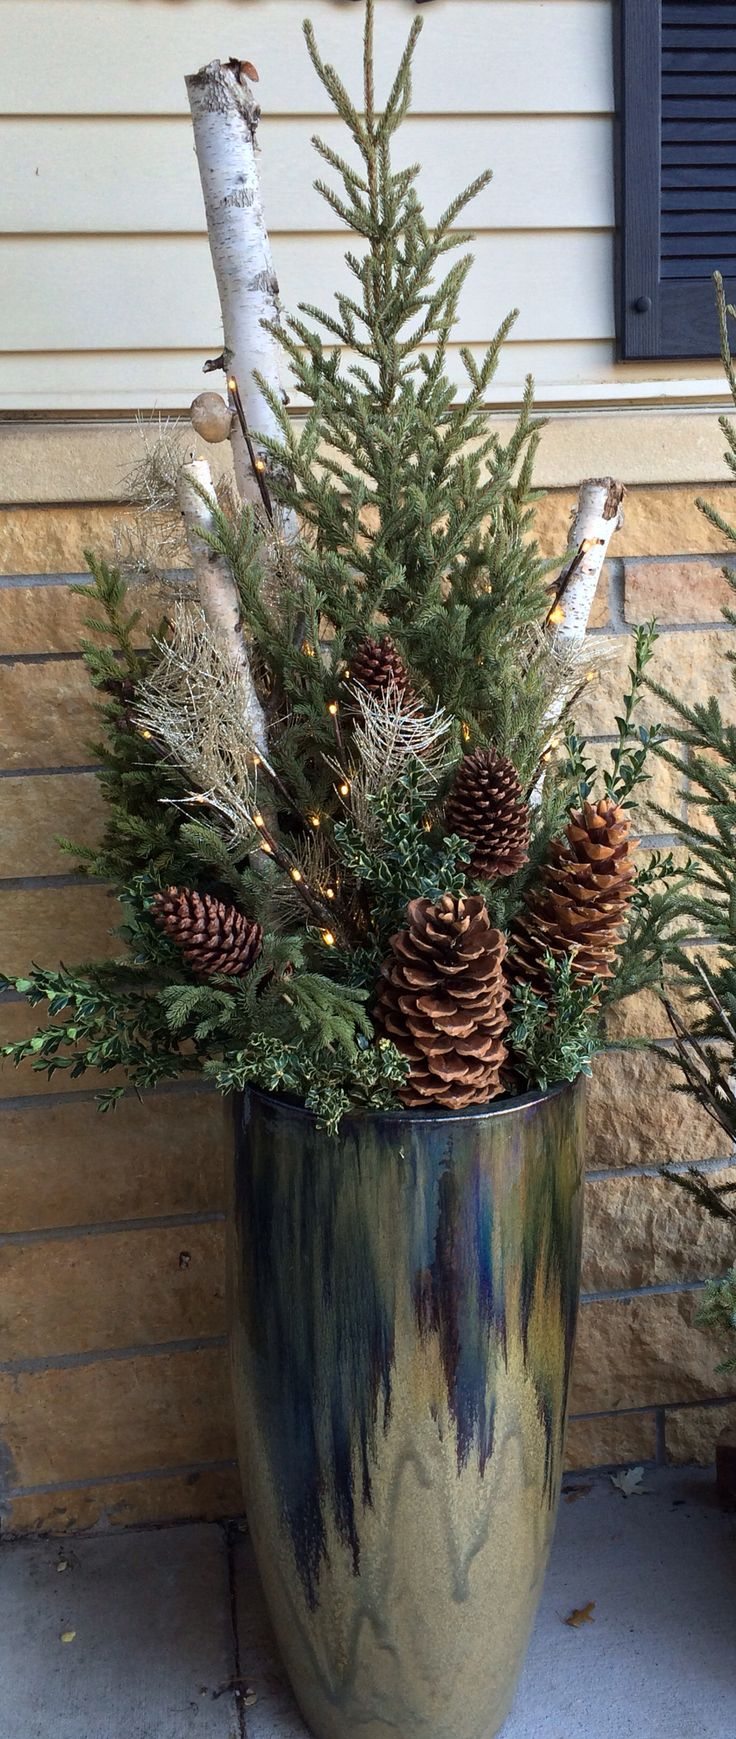 . Preparing Your Garden for Winter #Garden_for_Winter : Jeffery Pine Cones make amazing outdoor Decorations: https://houseofcones.com/collections/pine-tree-cones/products/pine-cones-for-wreaths